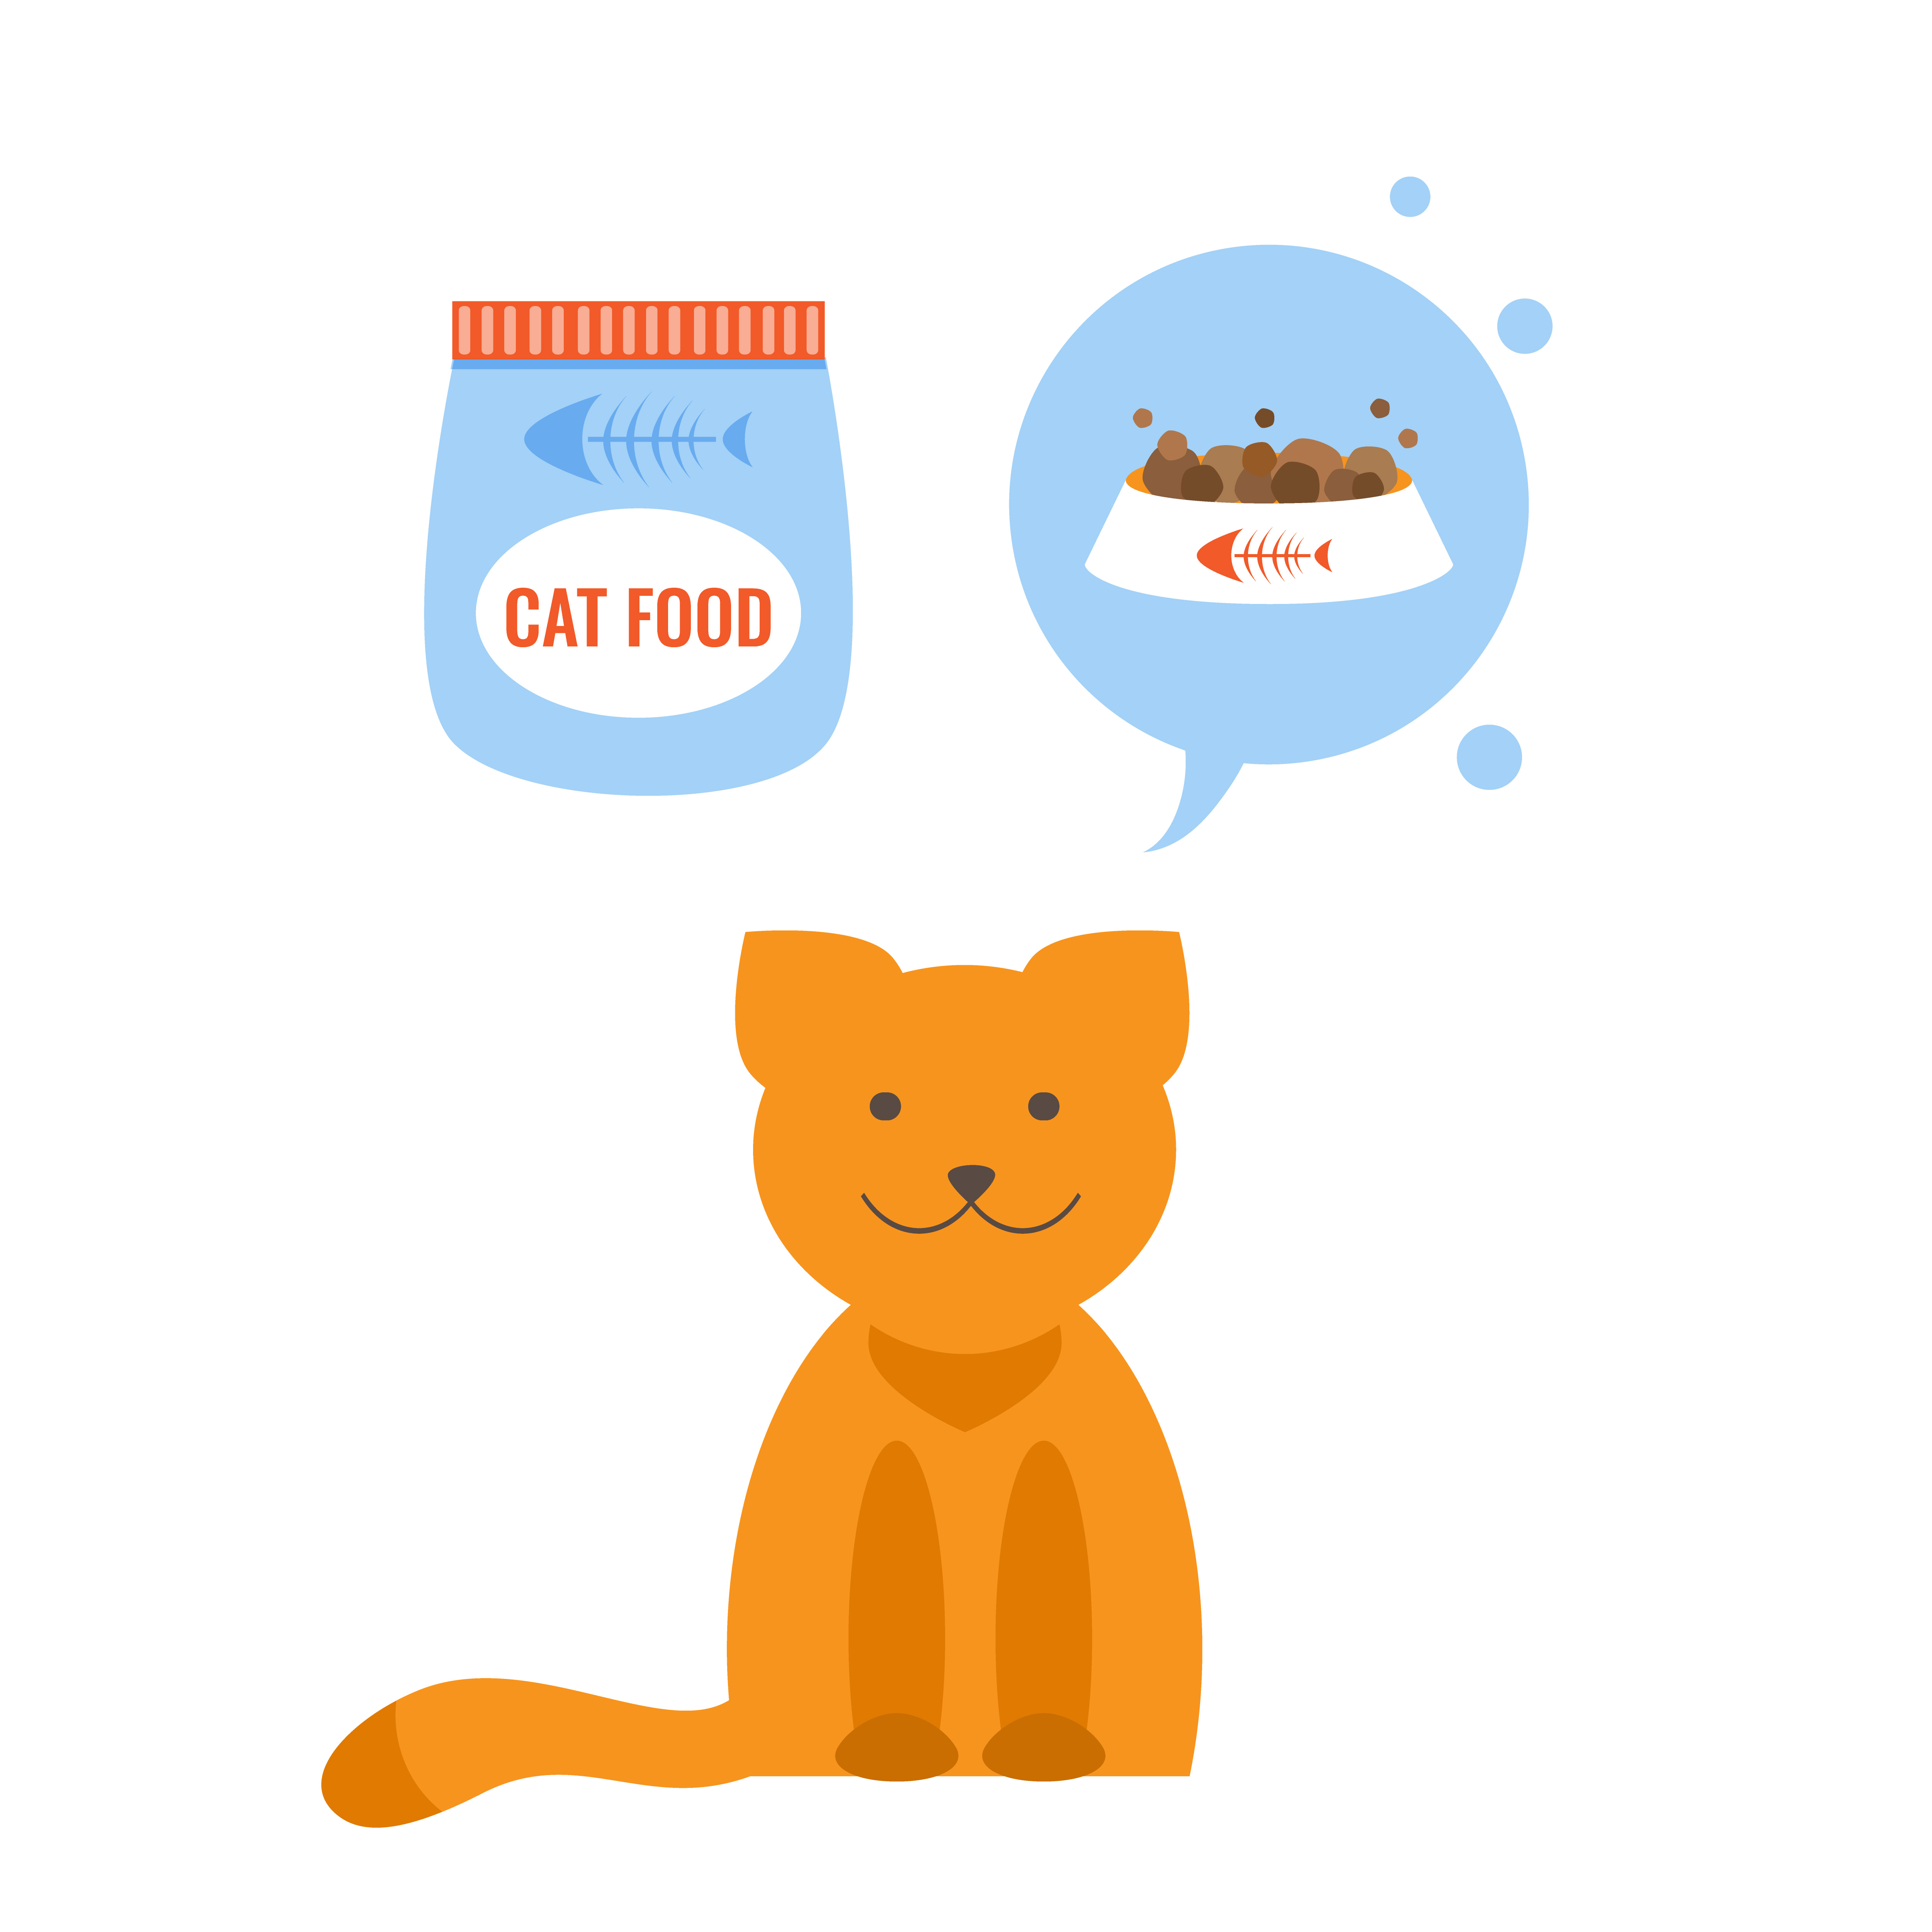 A ginger cat thinking about his favorite food options